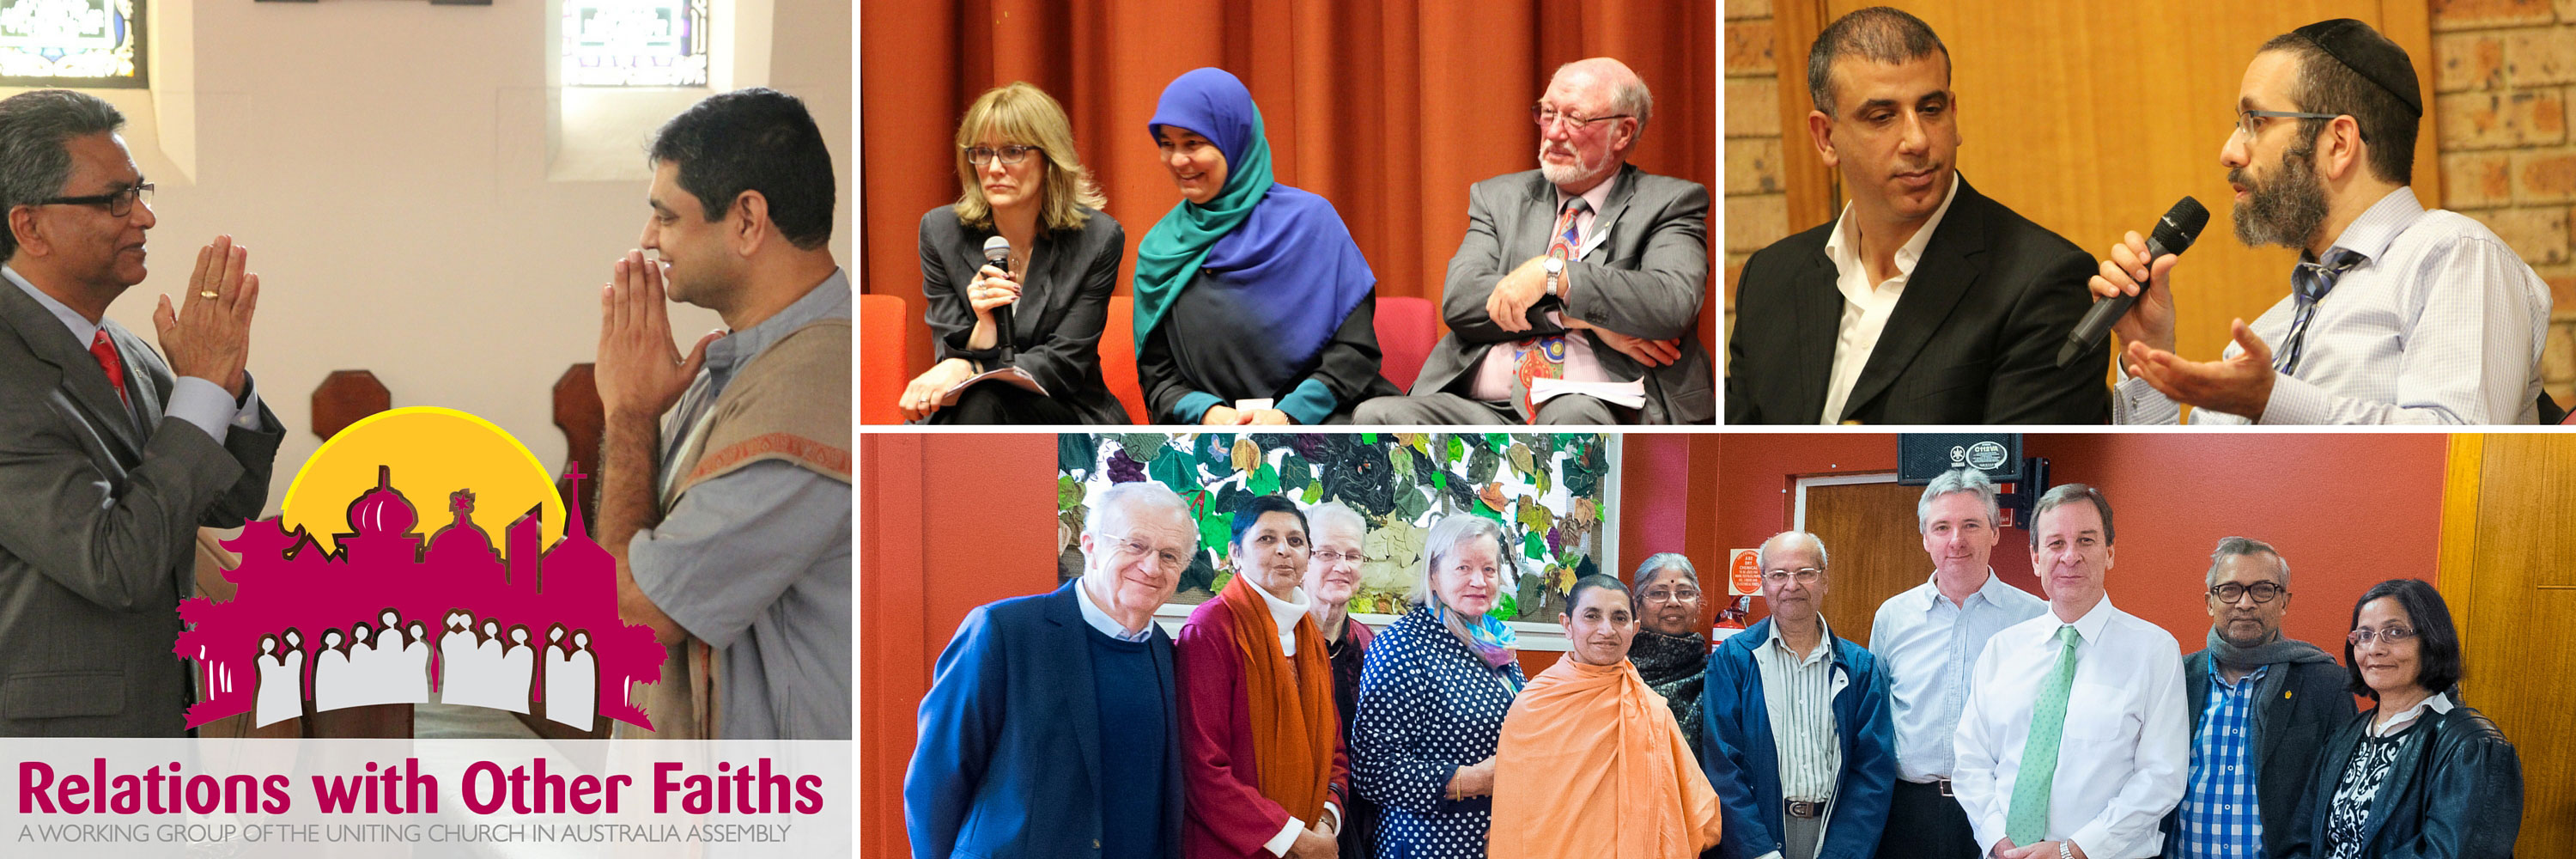 Relations with Other Faiths